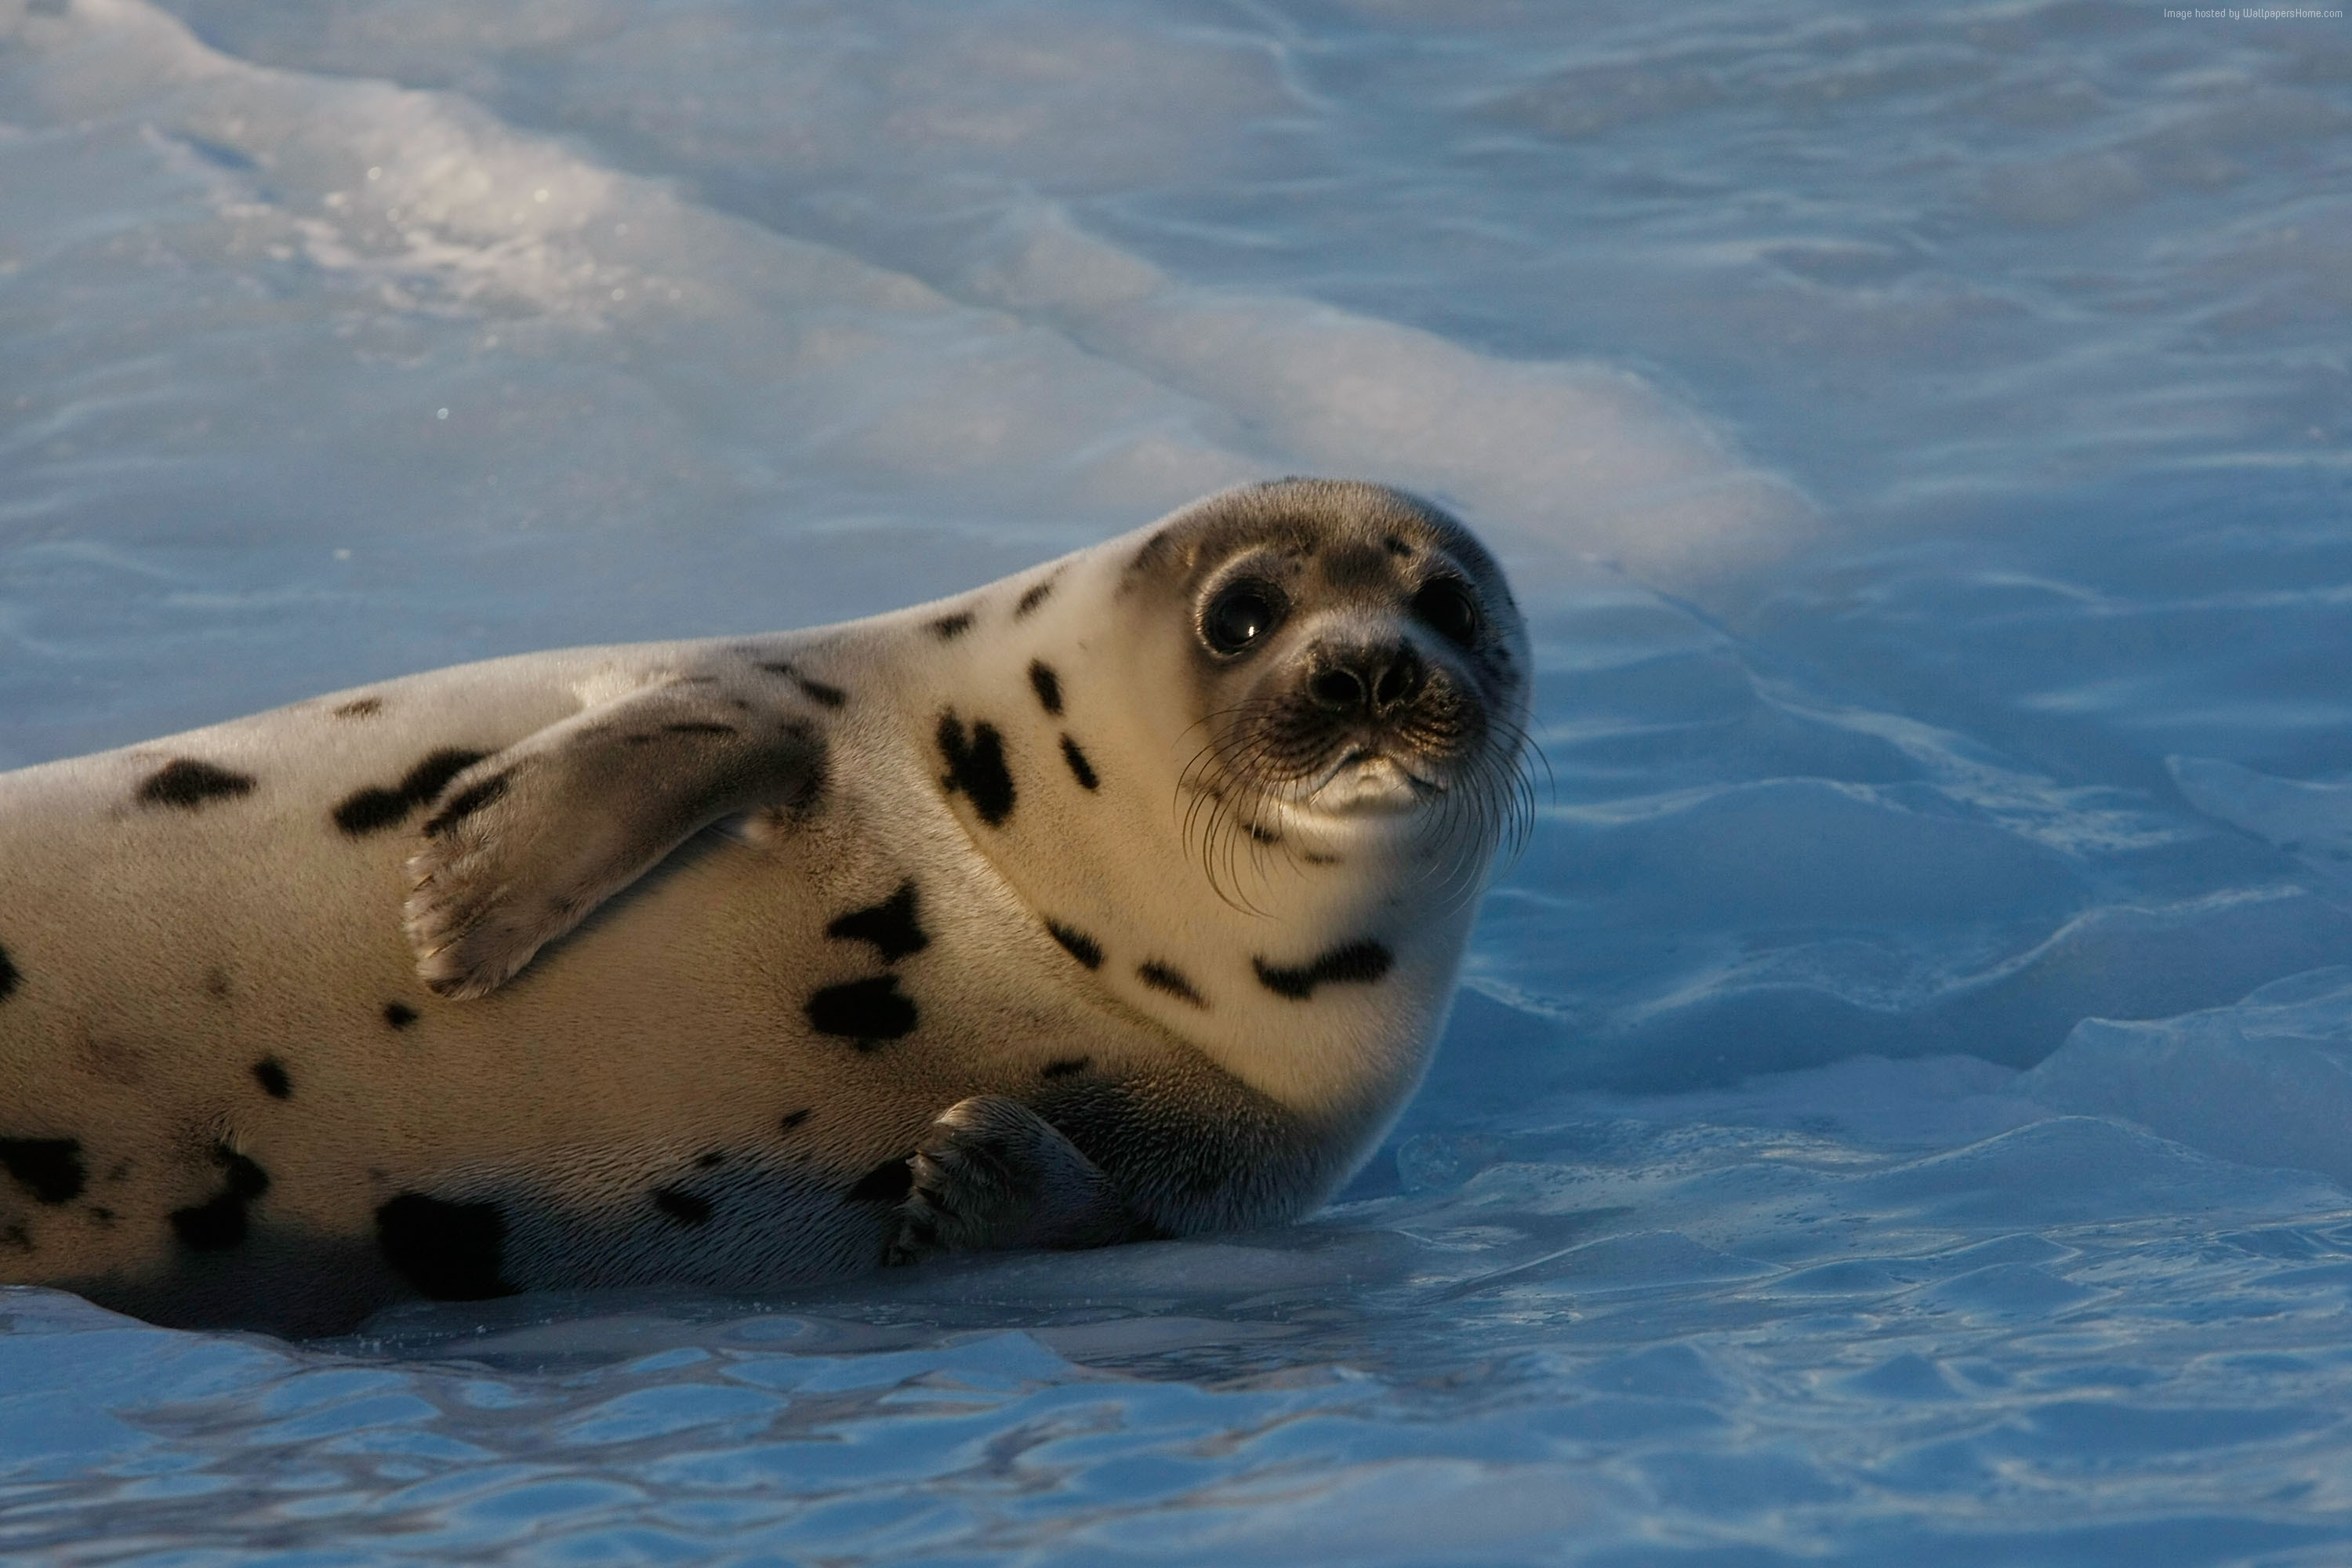 Wallpaper Seal pup, Atlantic Ocean, snow, funny, Animals #3857. Taking an  4k images, freezing a moment, reveals how rich reality truly is.